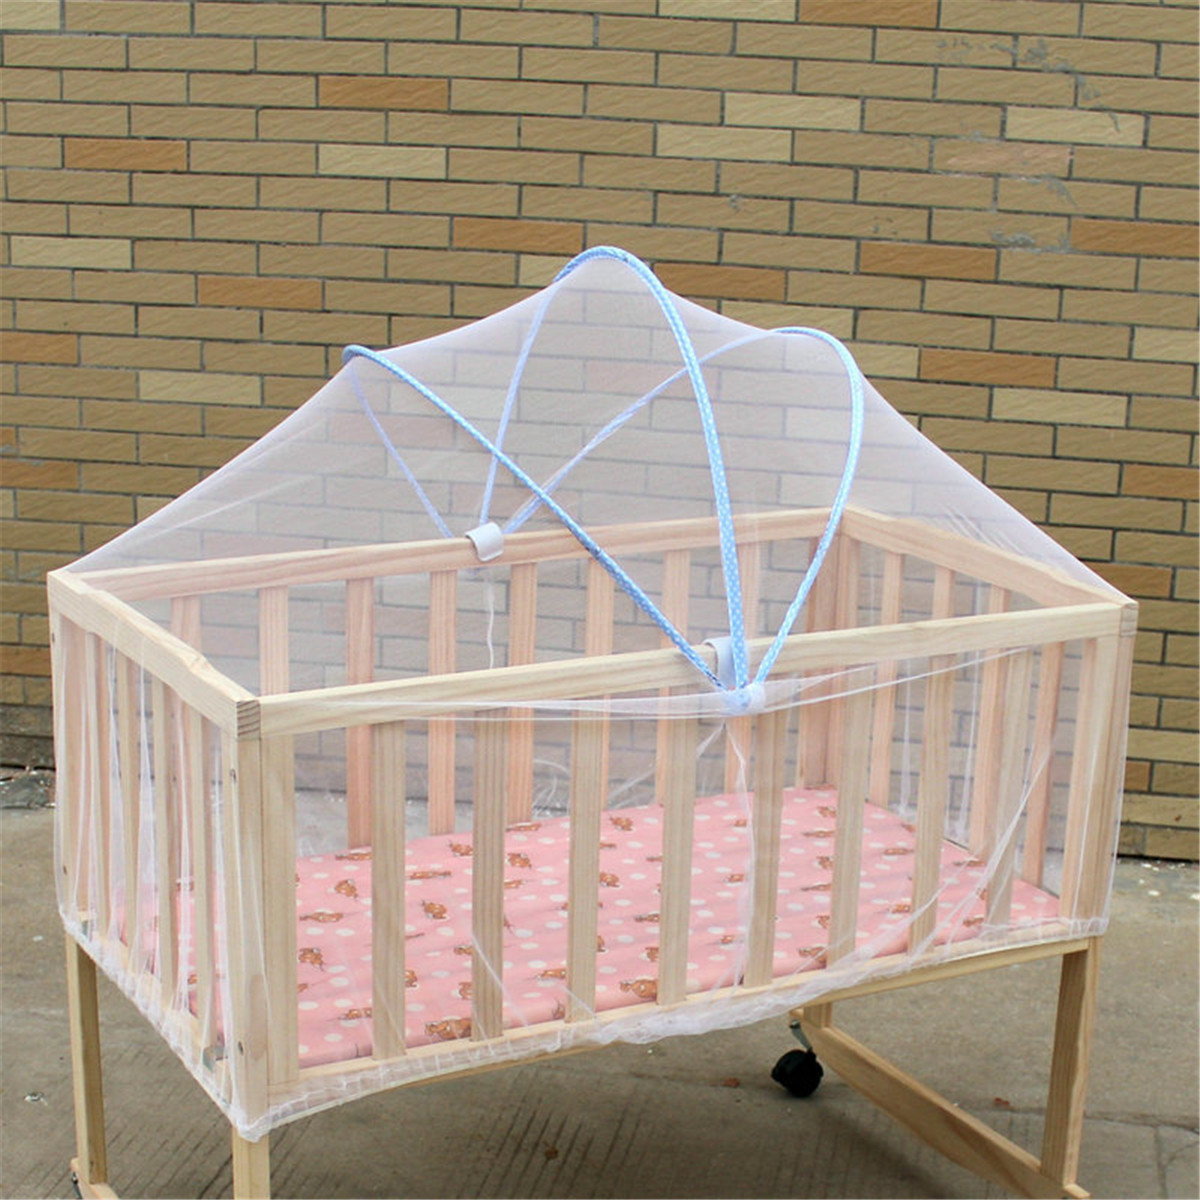 Meigar White Safe Baby Mosquito Nets Cradle Bed Canopy Mosquito Net Toddler's Crib Cot Netting Bedroom Accessories